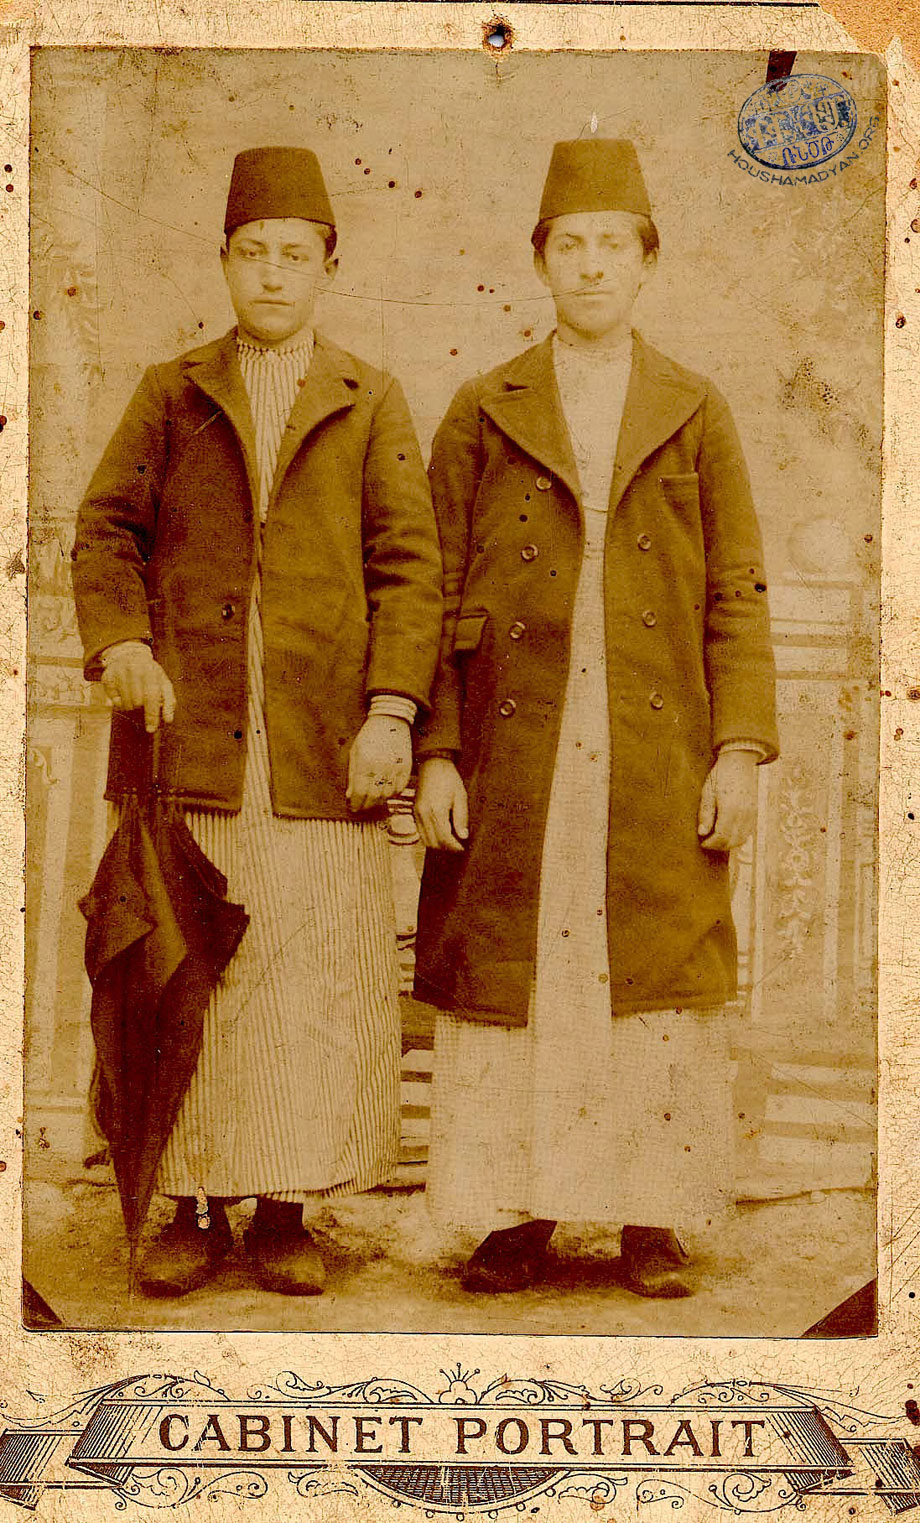 Yeghia Mooradian (left) and Yervant Garabedian (right) from Pazmashen village.